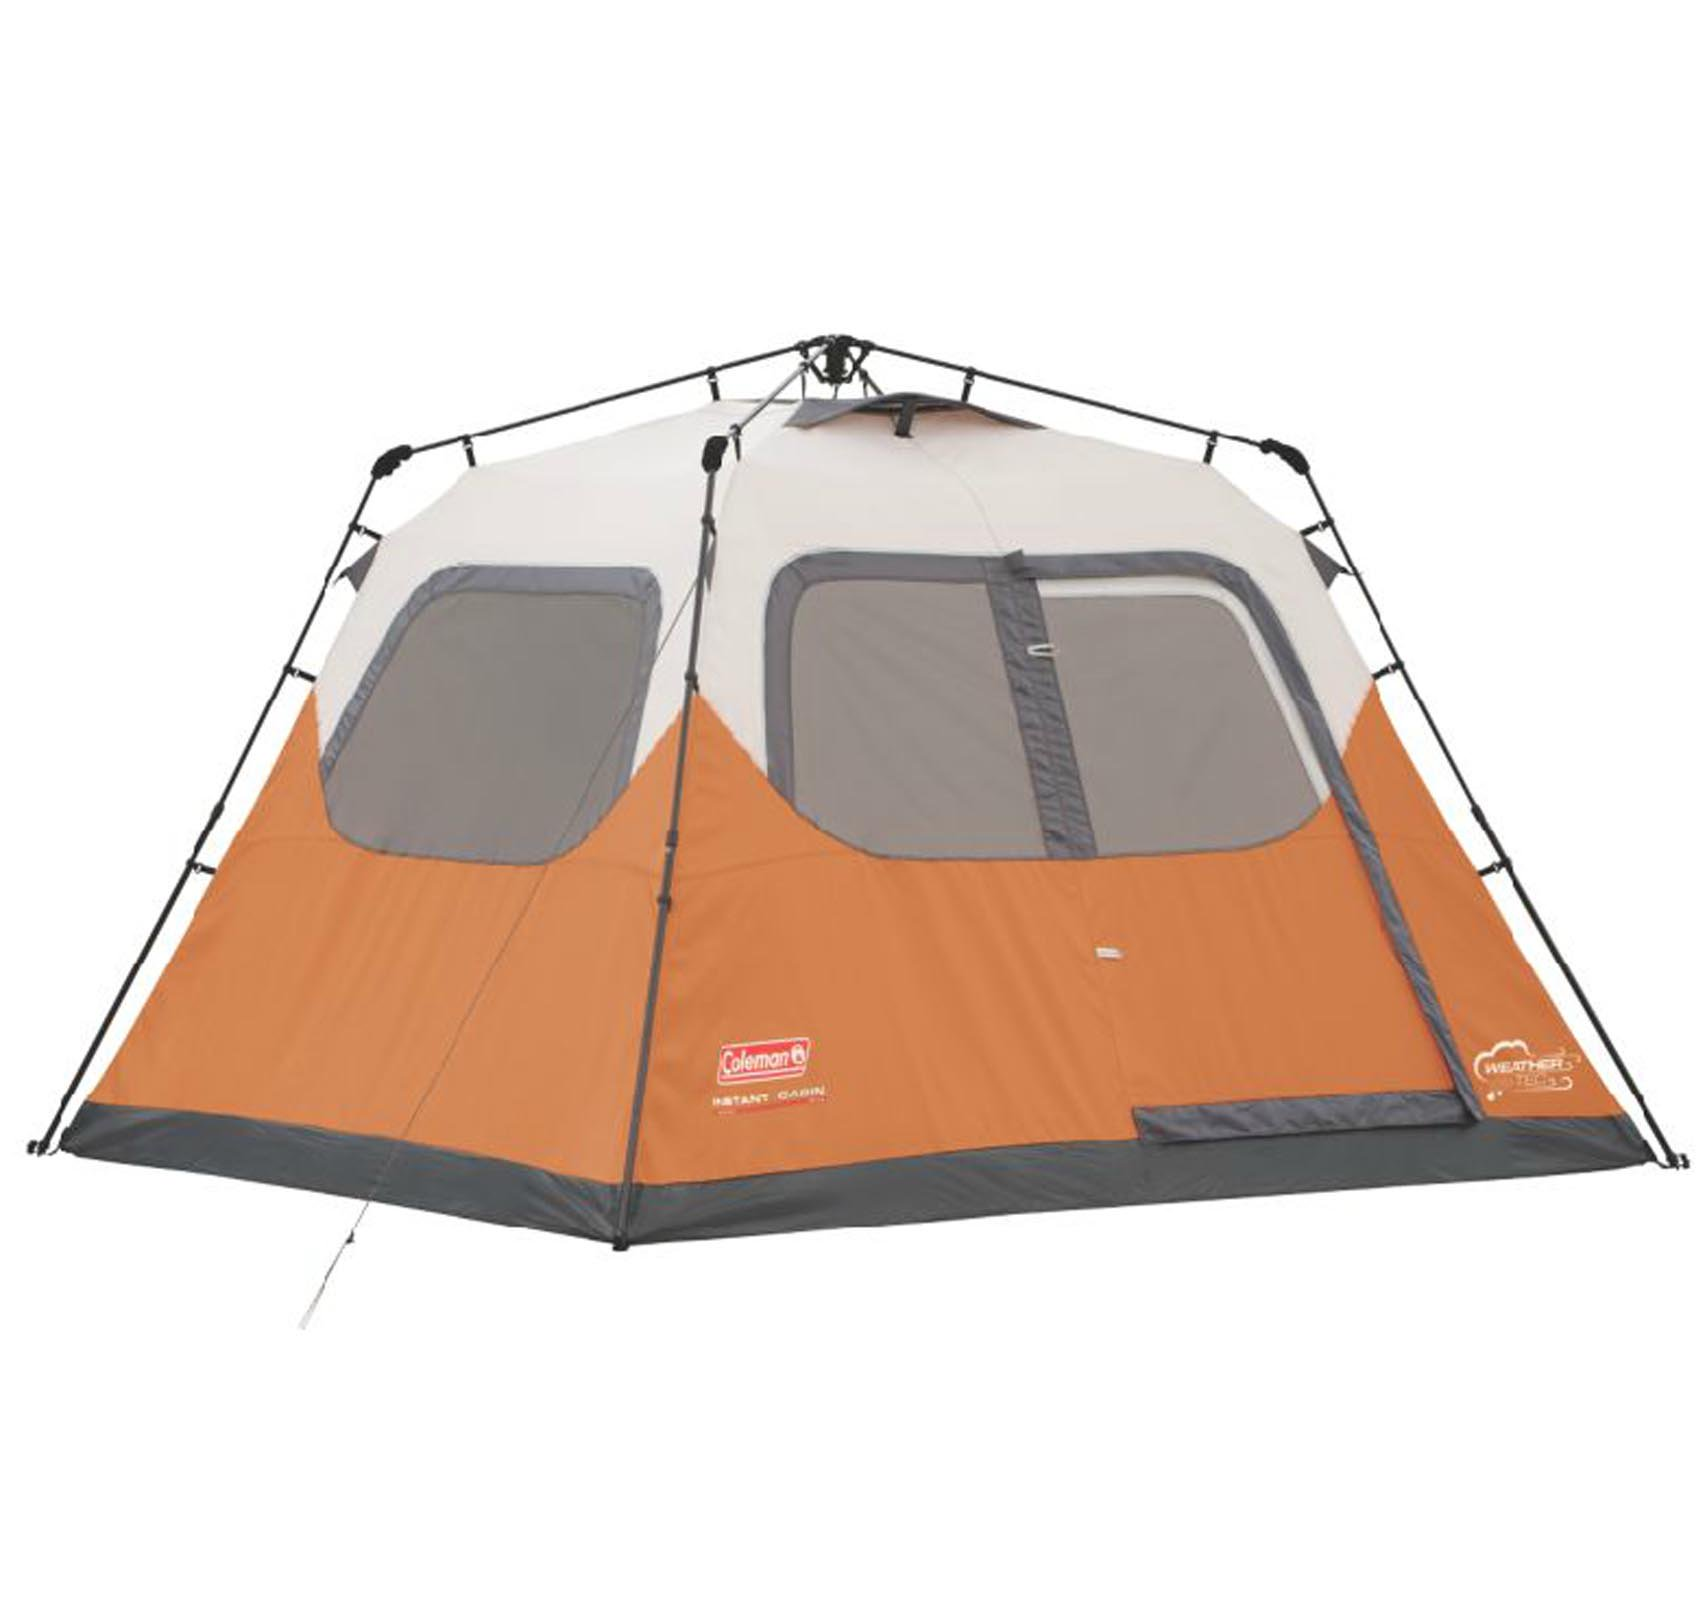 Coleman Outdoor 6 Person 10u0027 x 9u0027 Easy Set Up Family C&ing Instant Pop  sc 1 st  Walmart & Coleman Outdoor 6 Person 10u0027 x 9u0027 Easy Set Up Family Camping ...